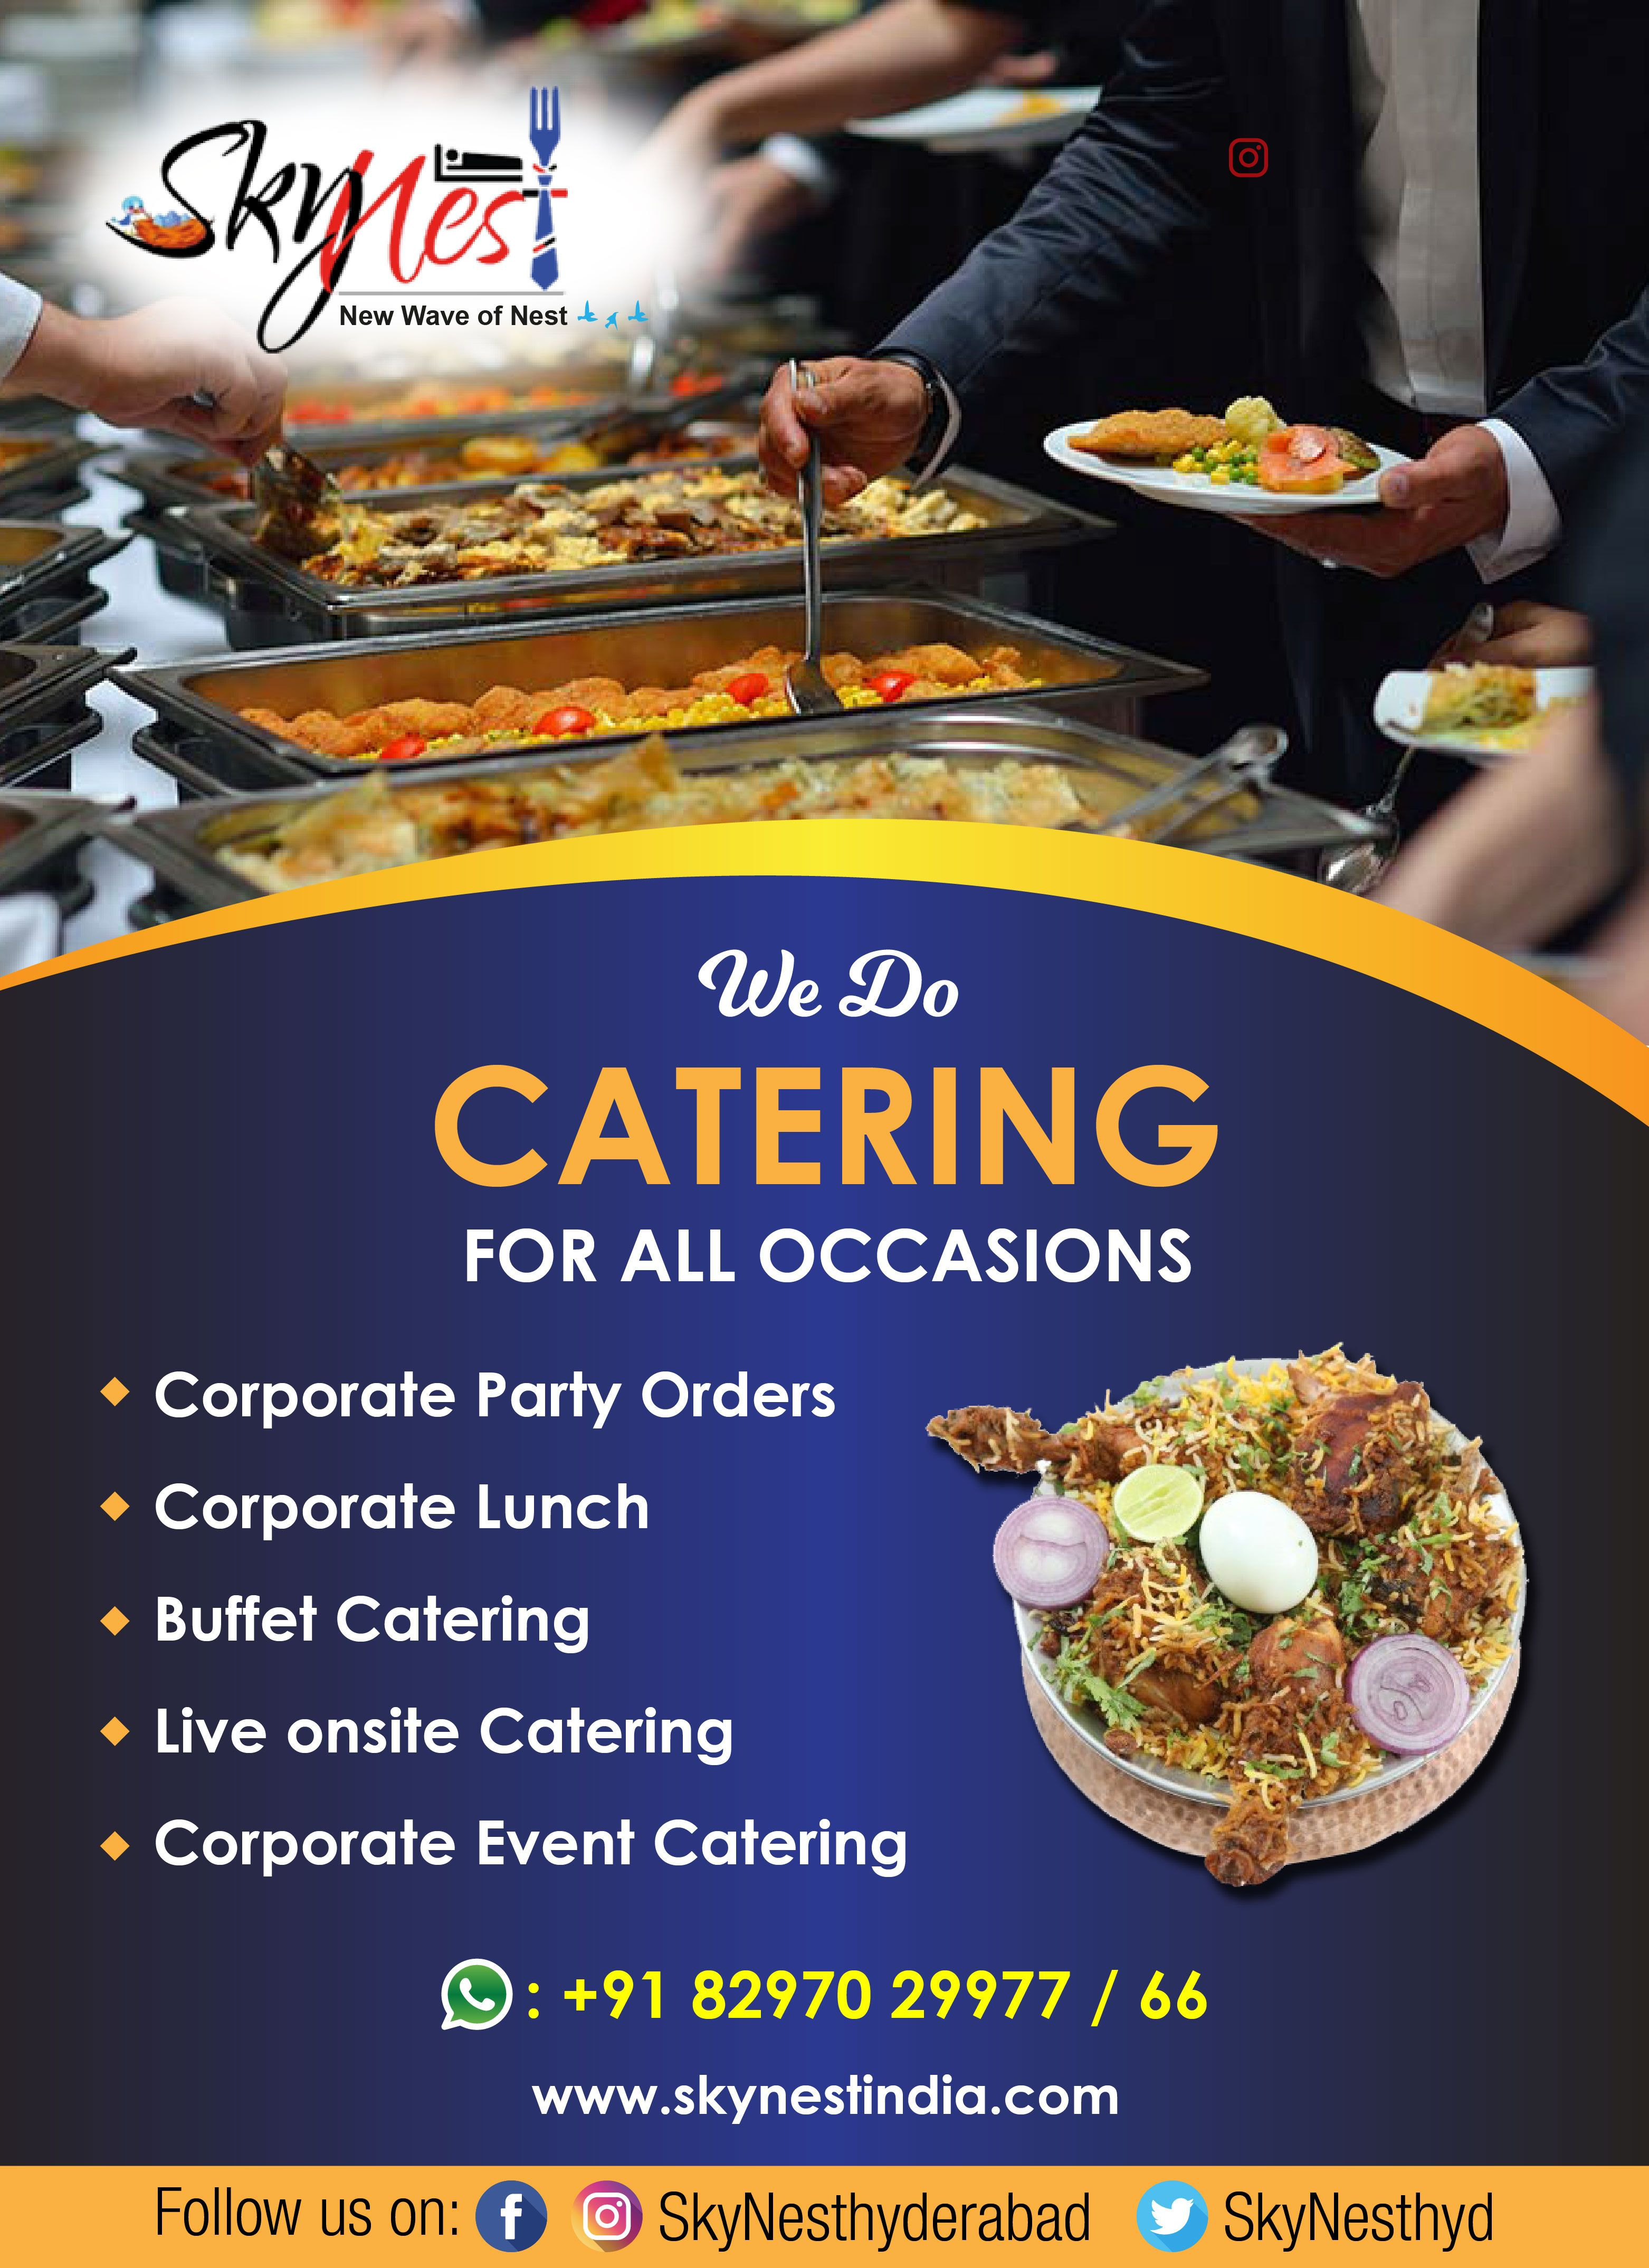 Outdoor catering services in Gachibowli | Corporate lunch Services in Gachibowli